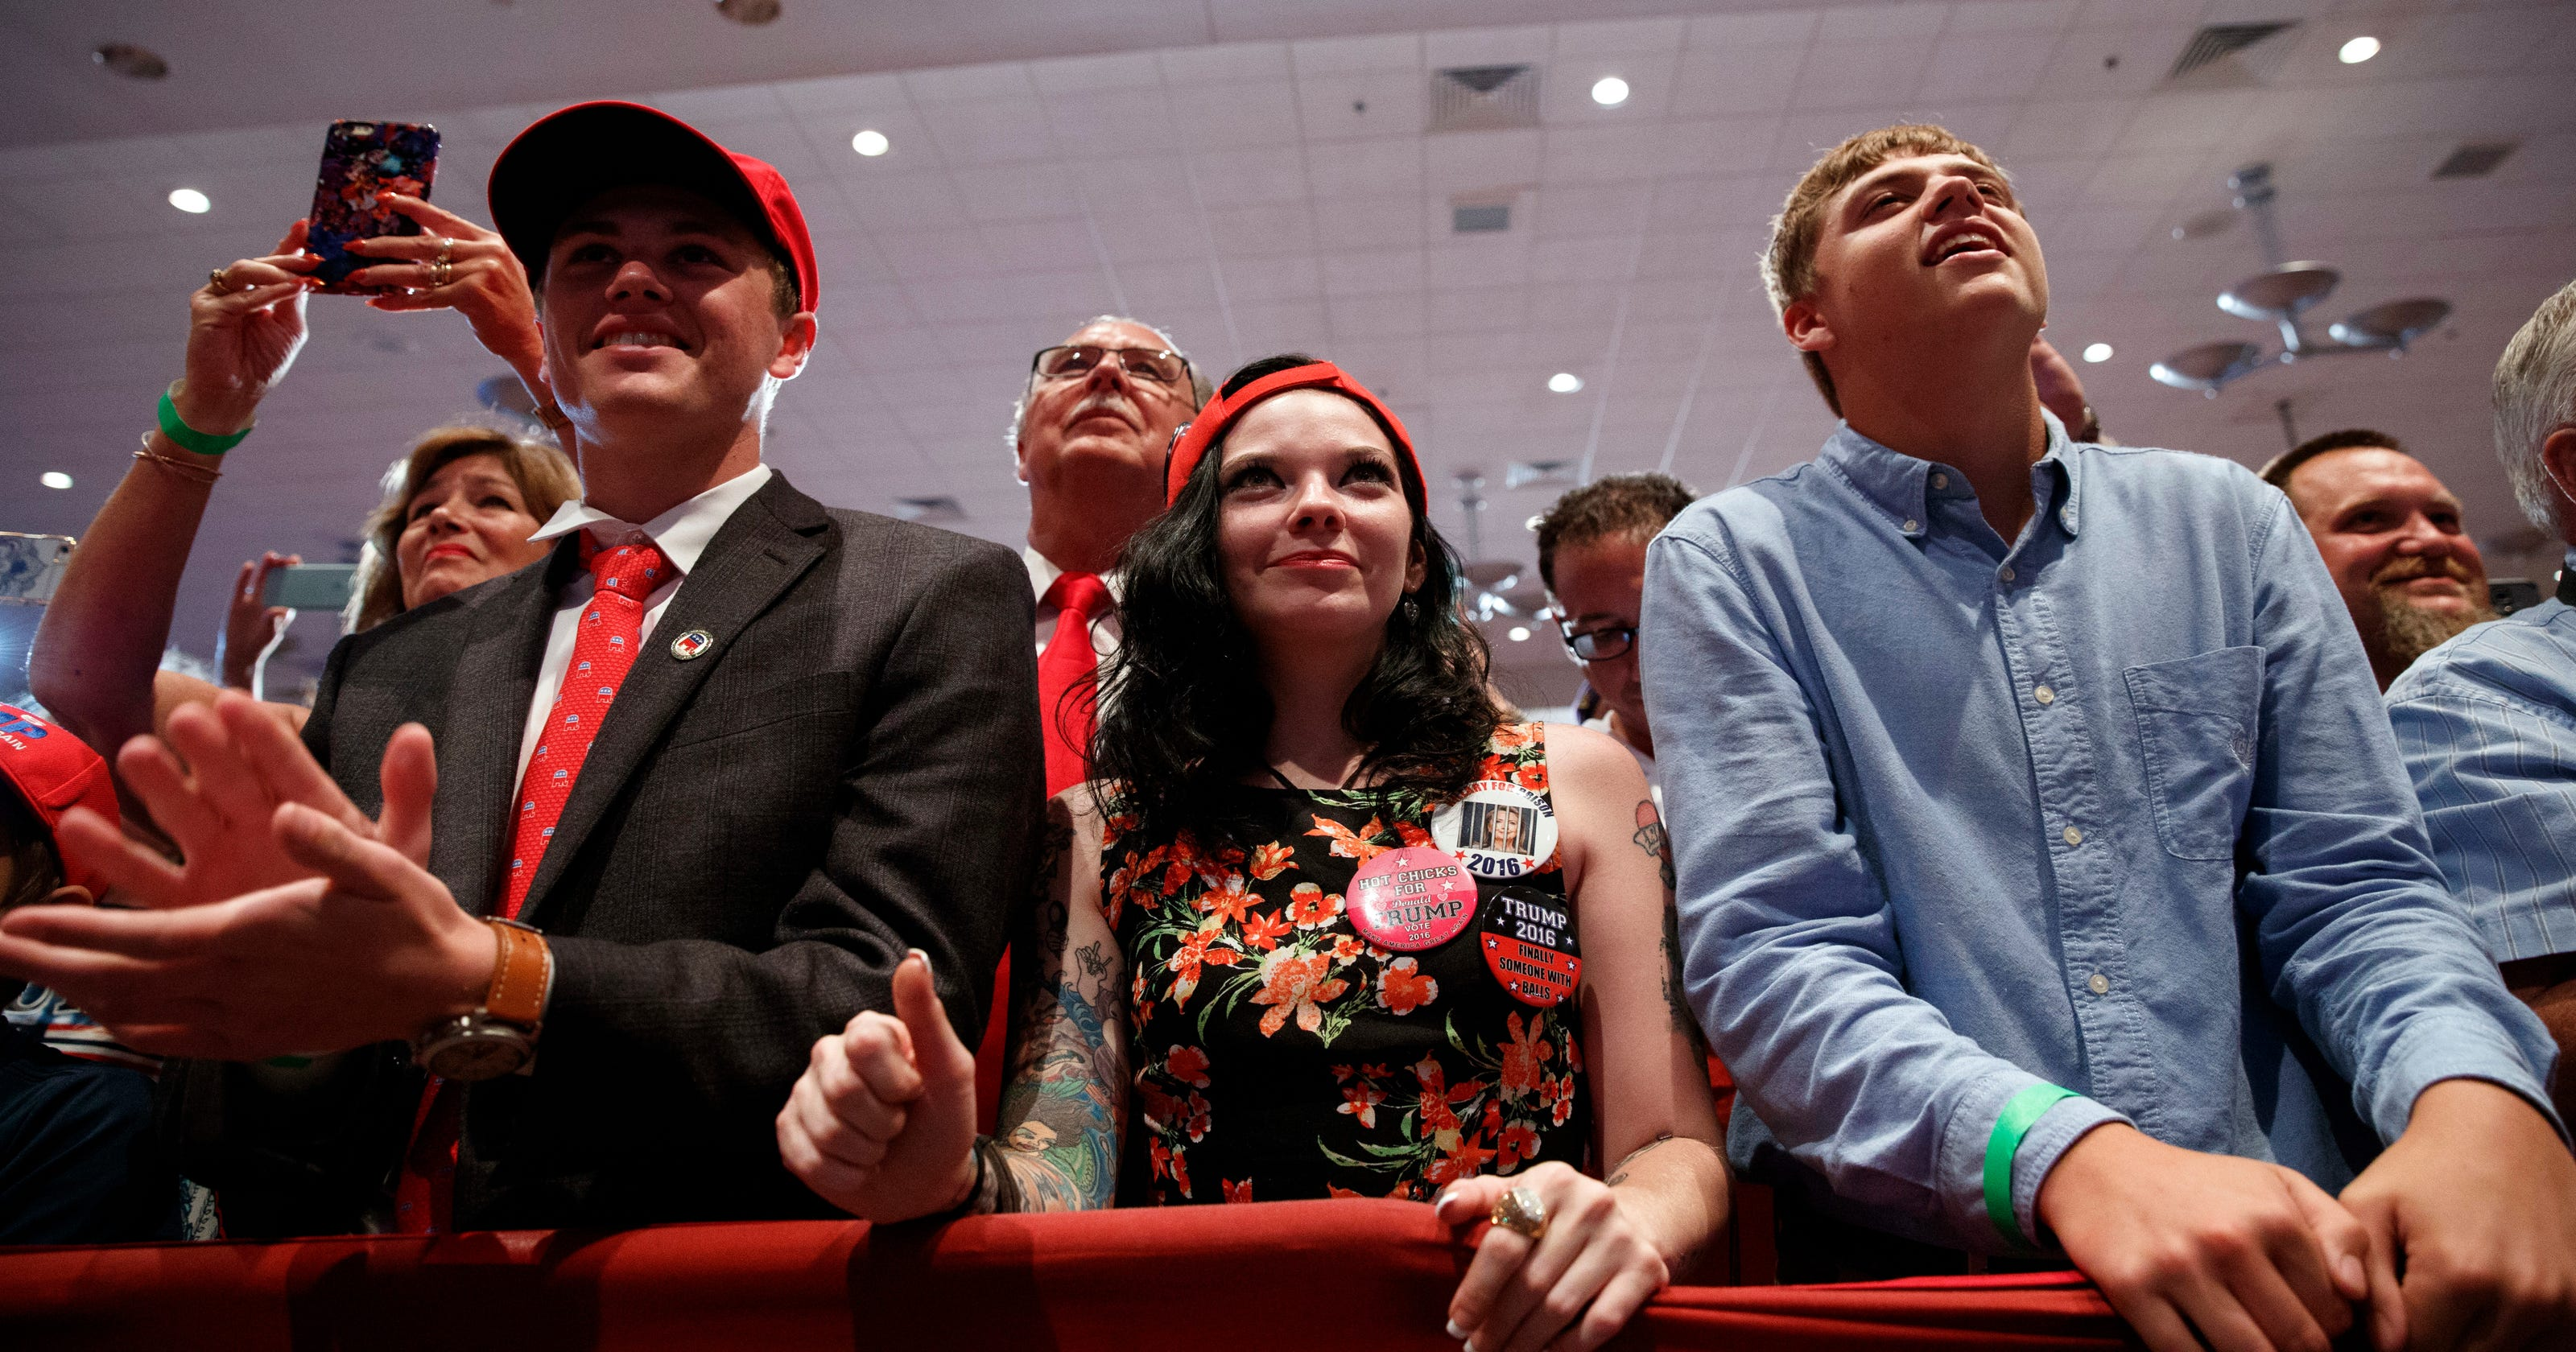 Young voters flee Donald Trump in what may be historic trouncing, poll shows